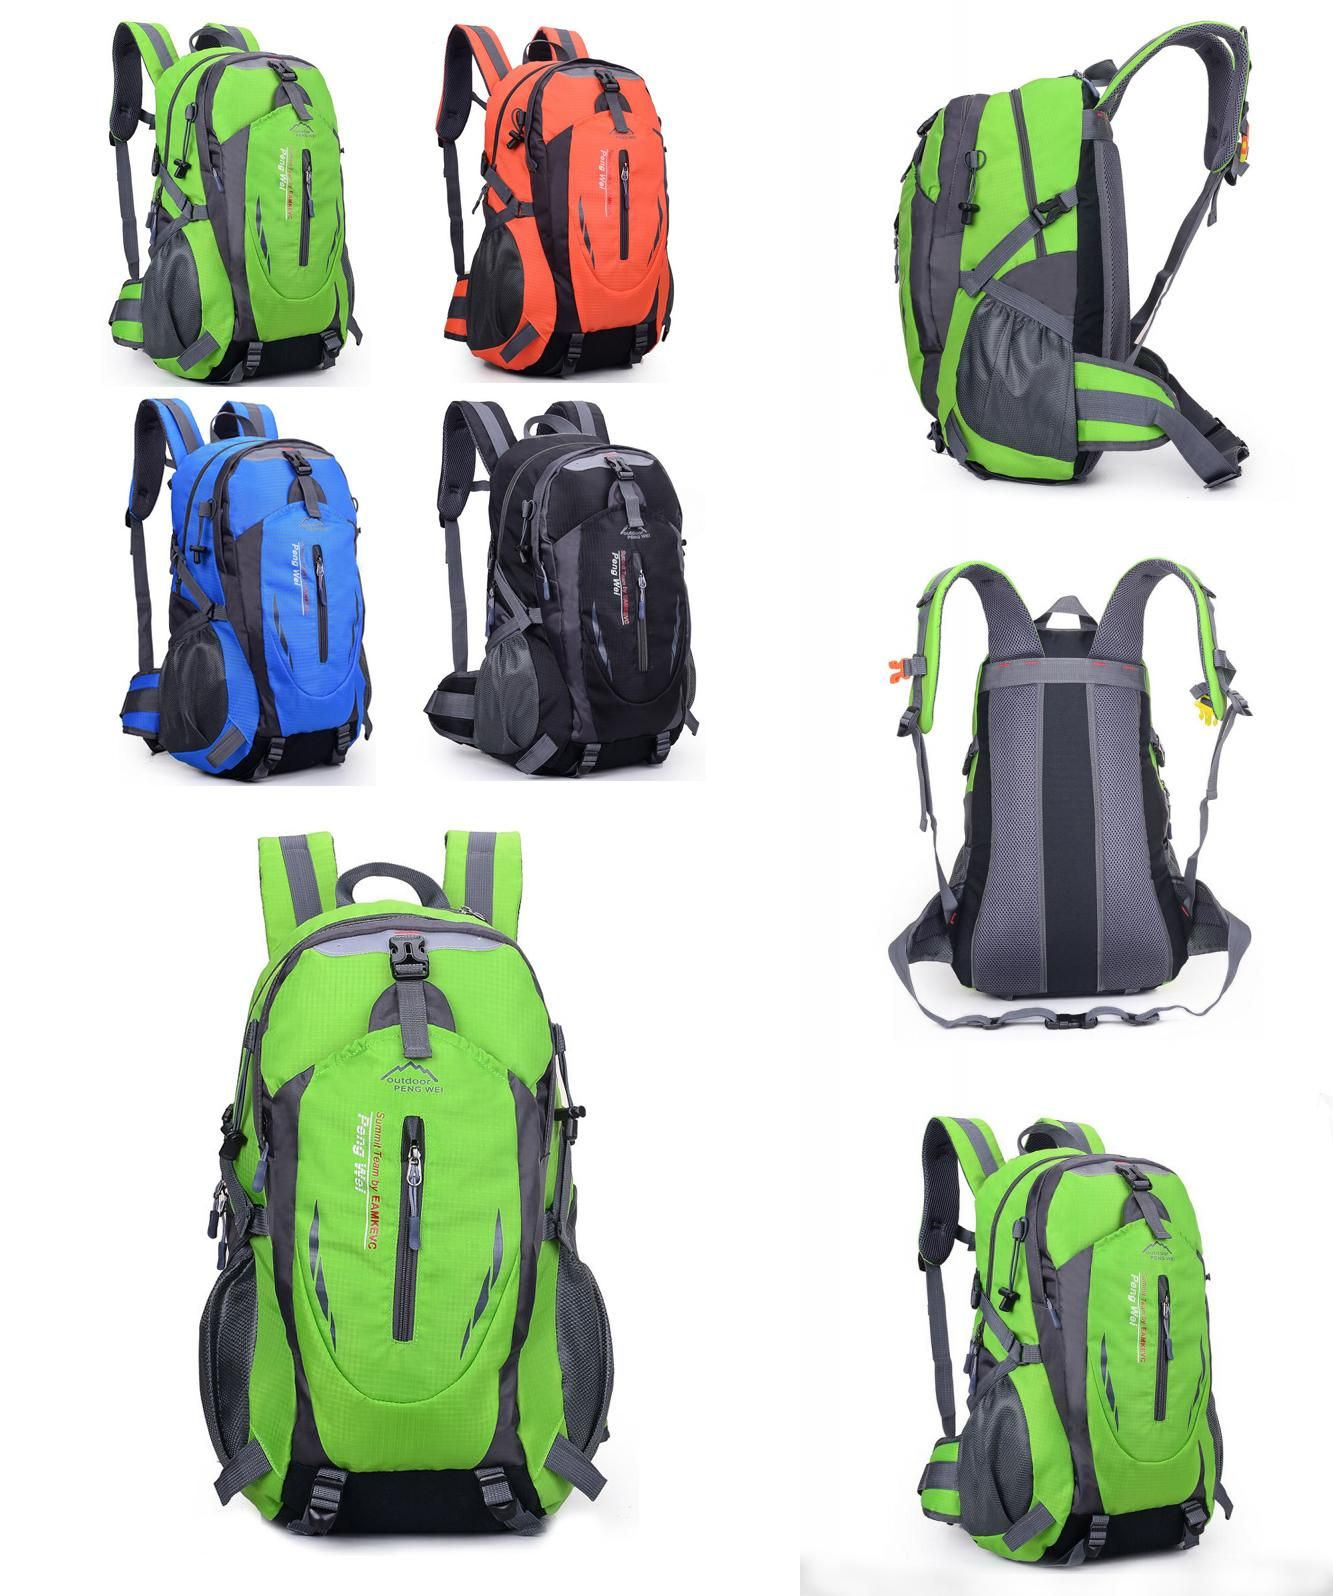 Visit to Buy] High Quality Outdoor Climbing Bag For Man Waterproof ...